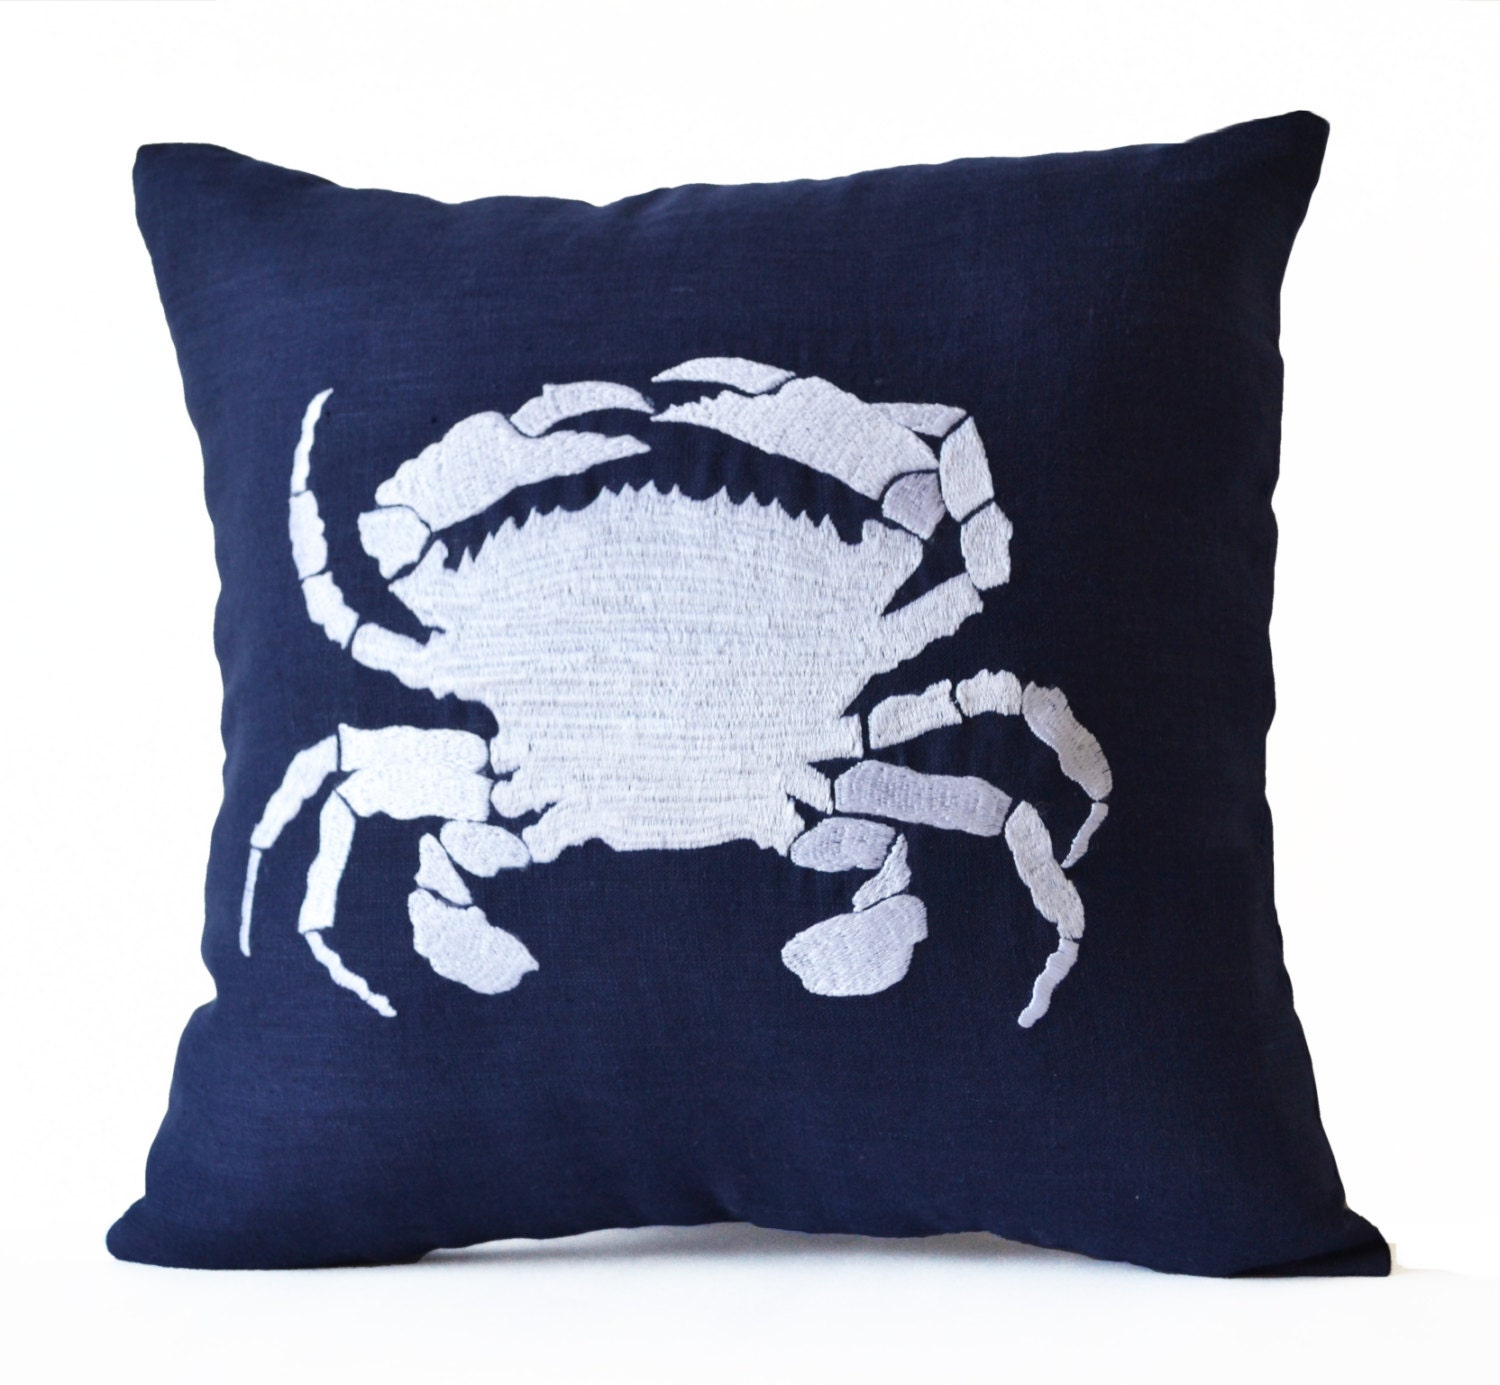 Navy blue throw pillow case beach decor nautical pillows for Decor pillows